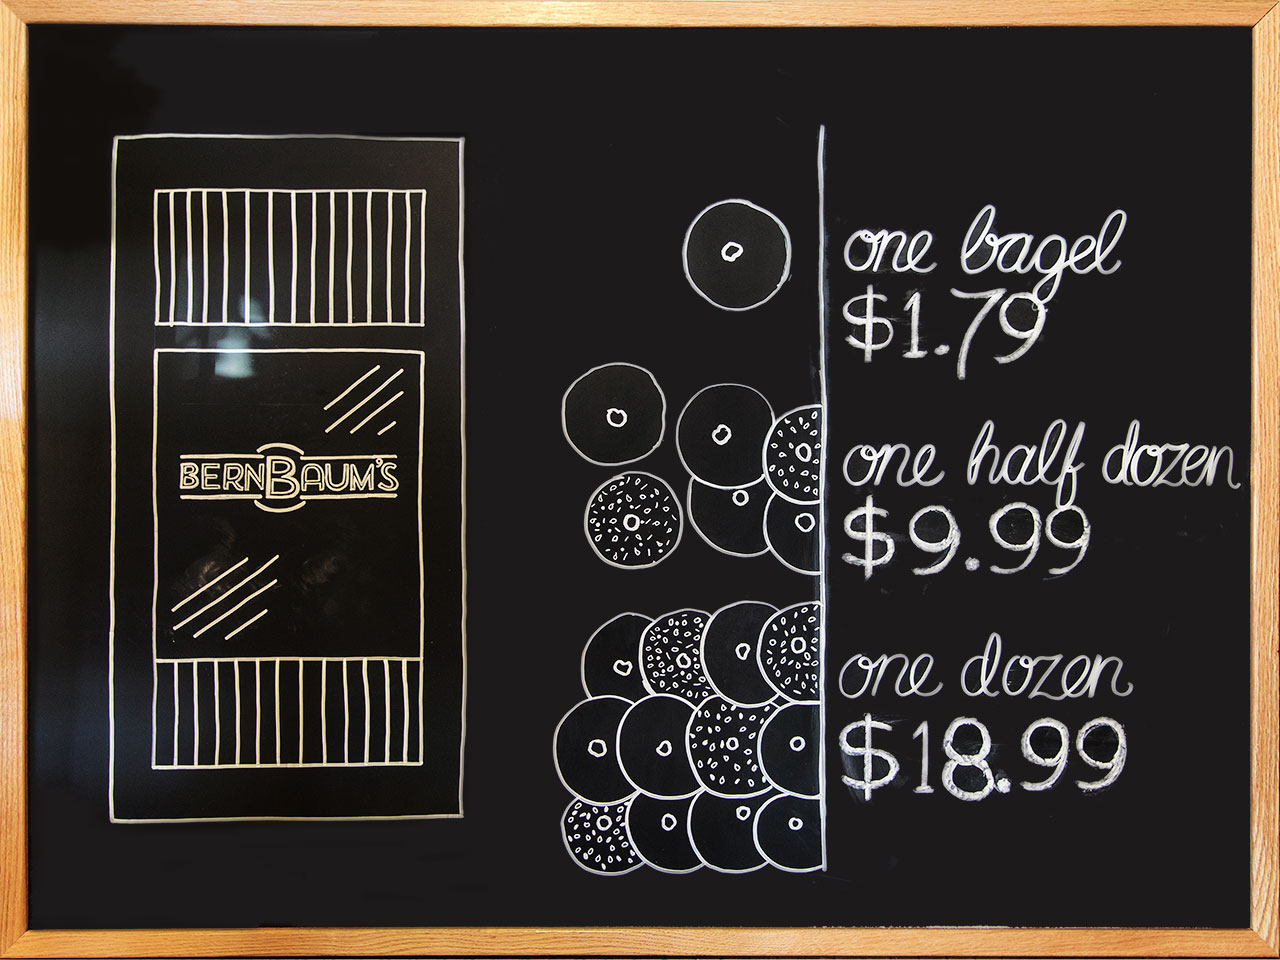 Black chalkboard with white chalked pricing of bagels, illustrations of plain and seeded bagels, and BernBaum's front door